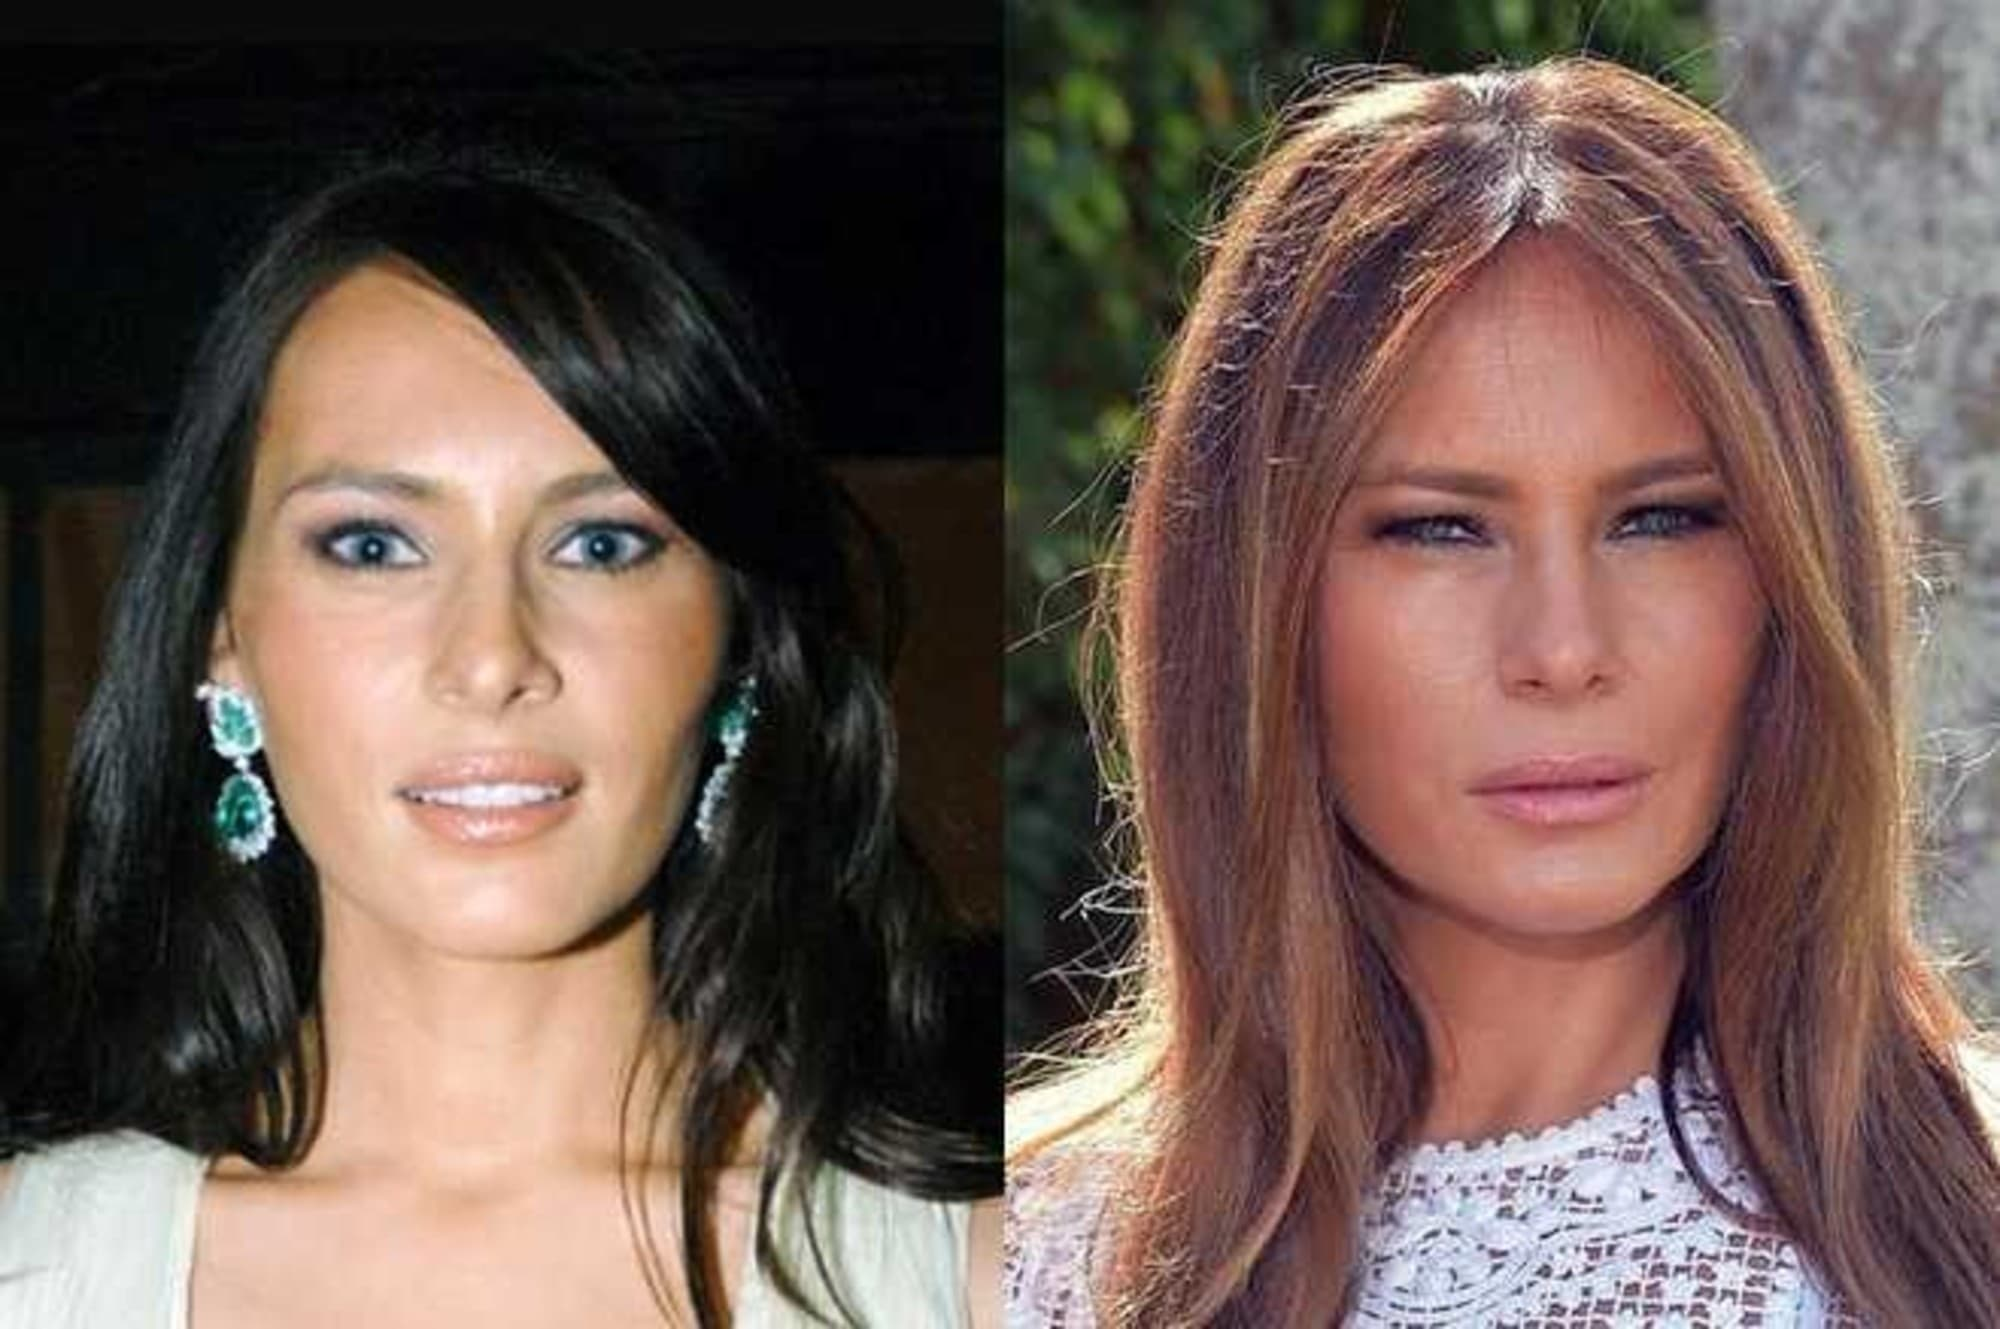 Michelle Obama Plastic Surgery Before And After photo - 1